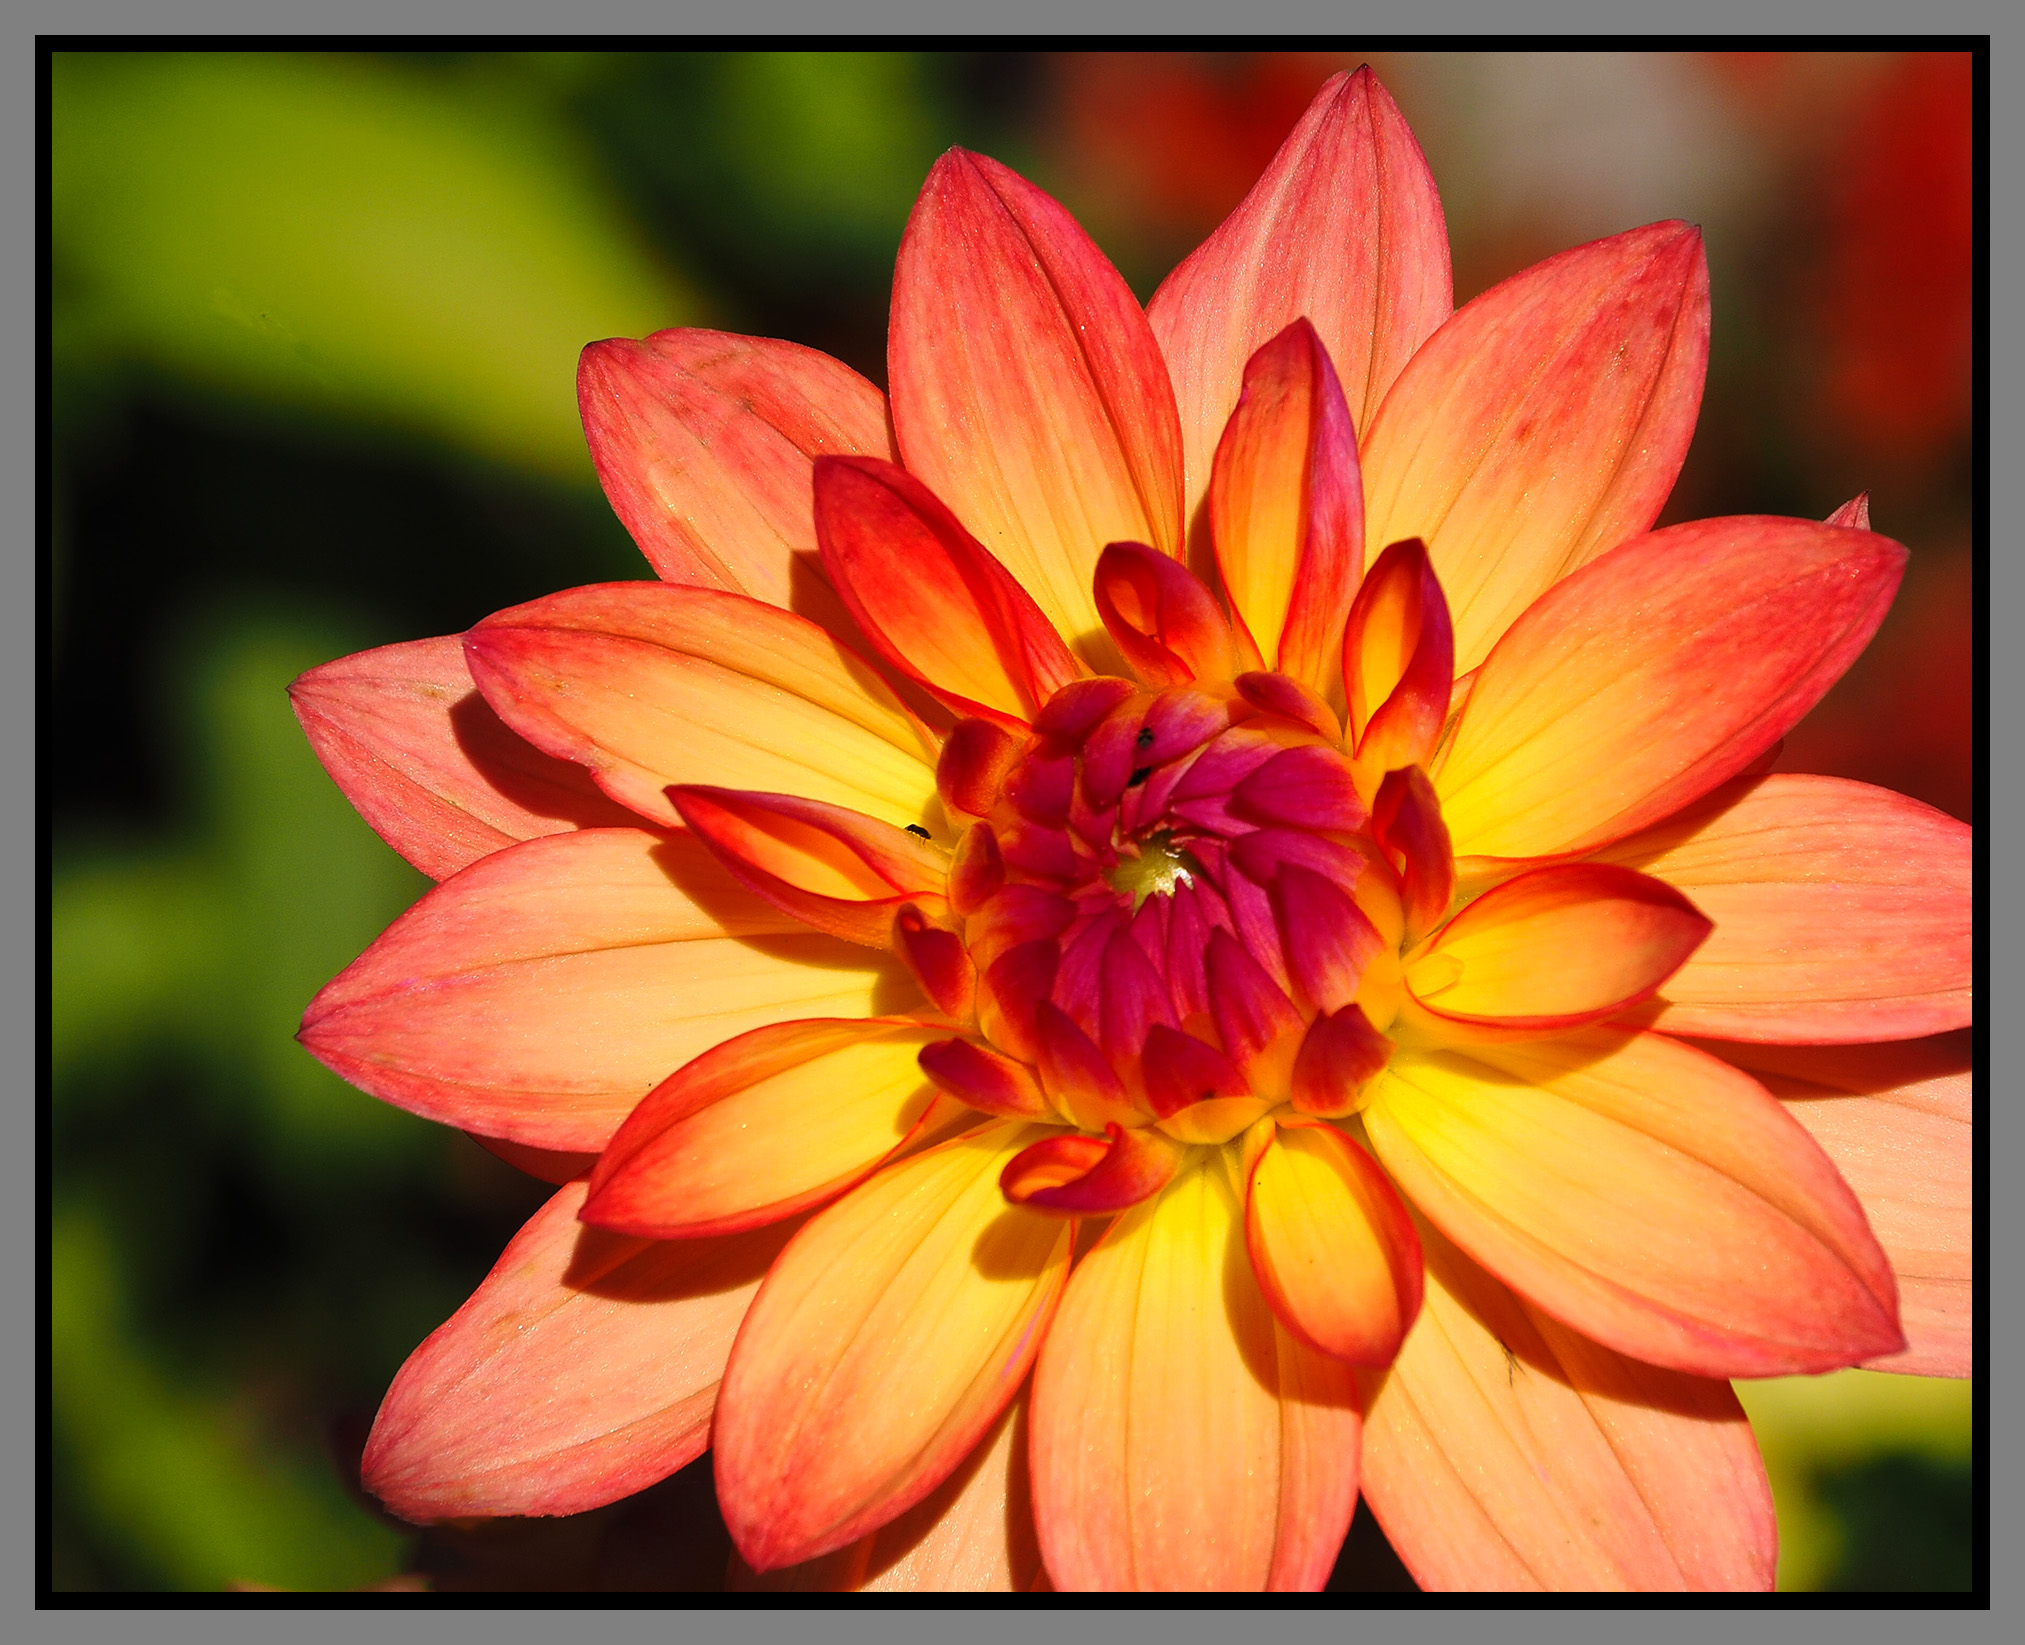 Autumn Flower - Digital (Shallow Depth of Field) - Name Withheld Per Request